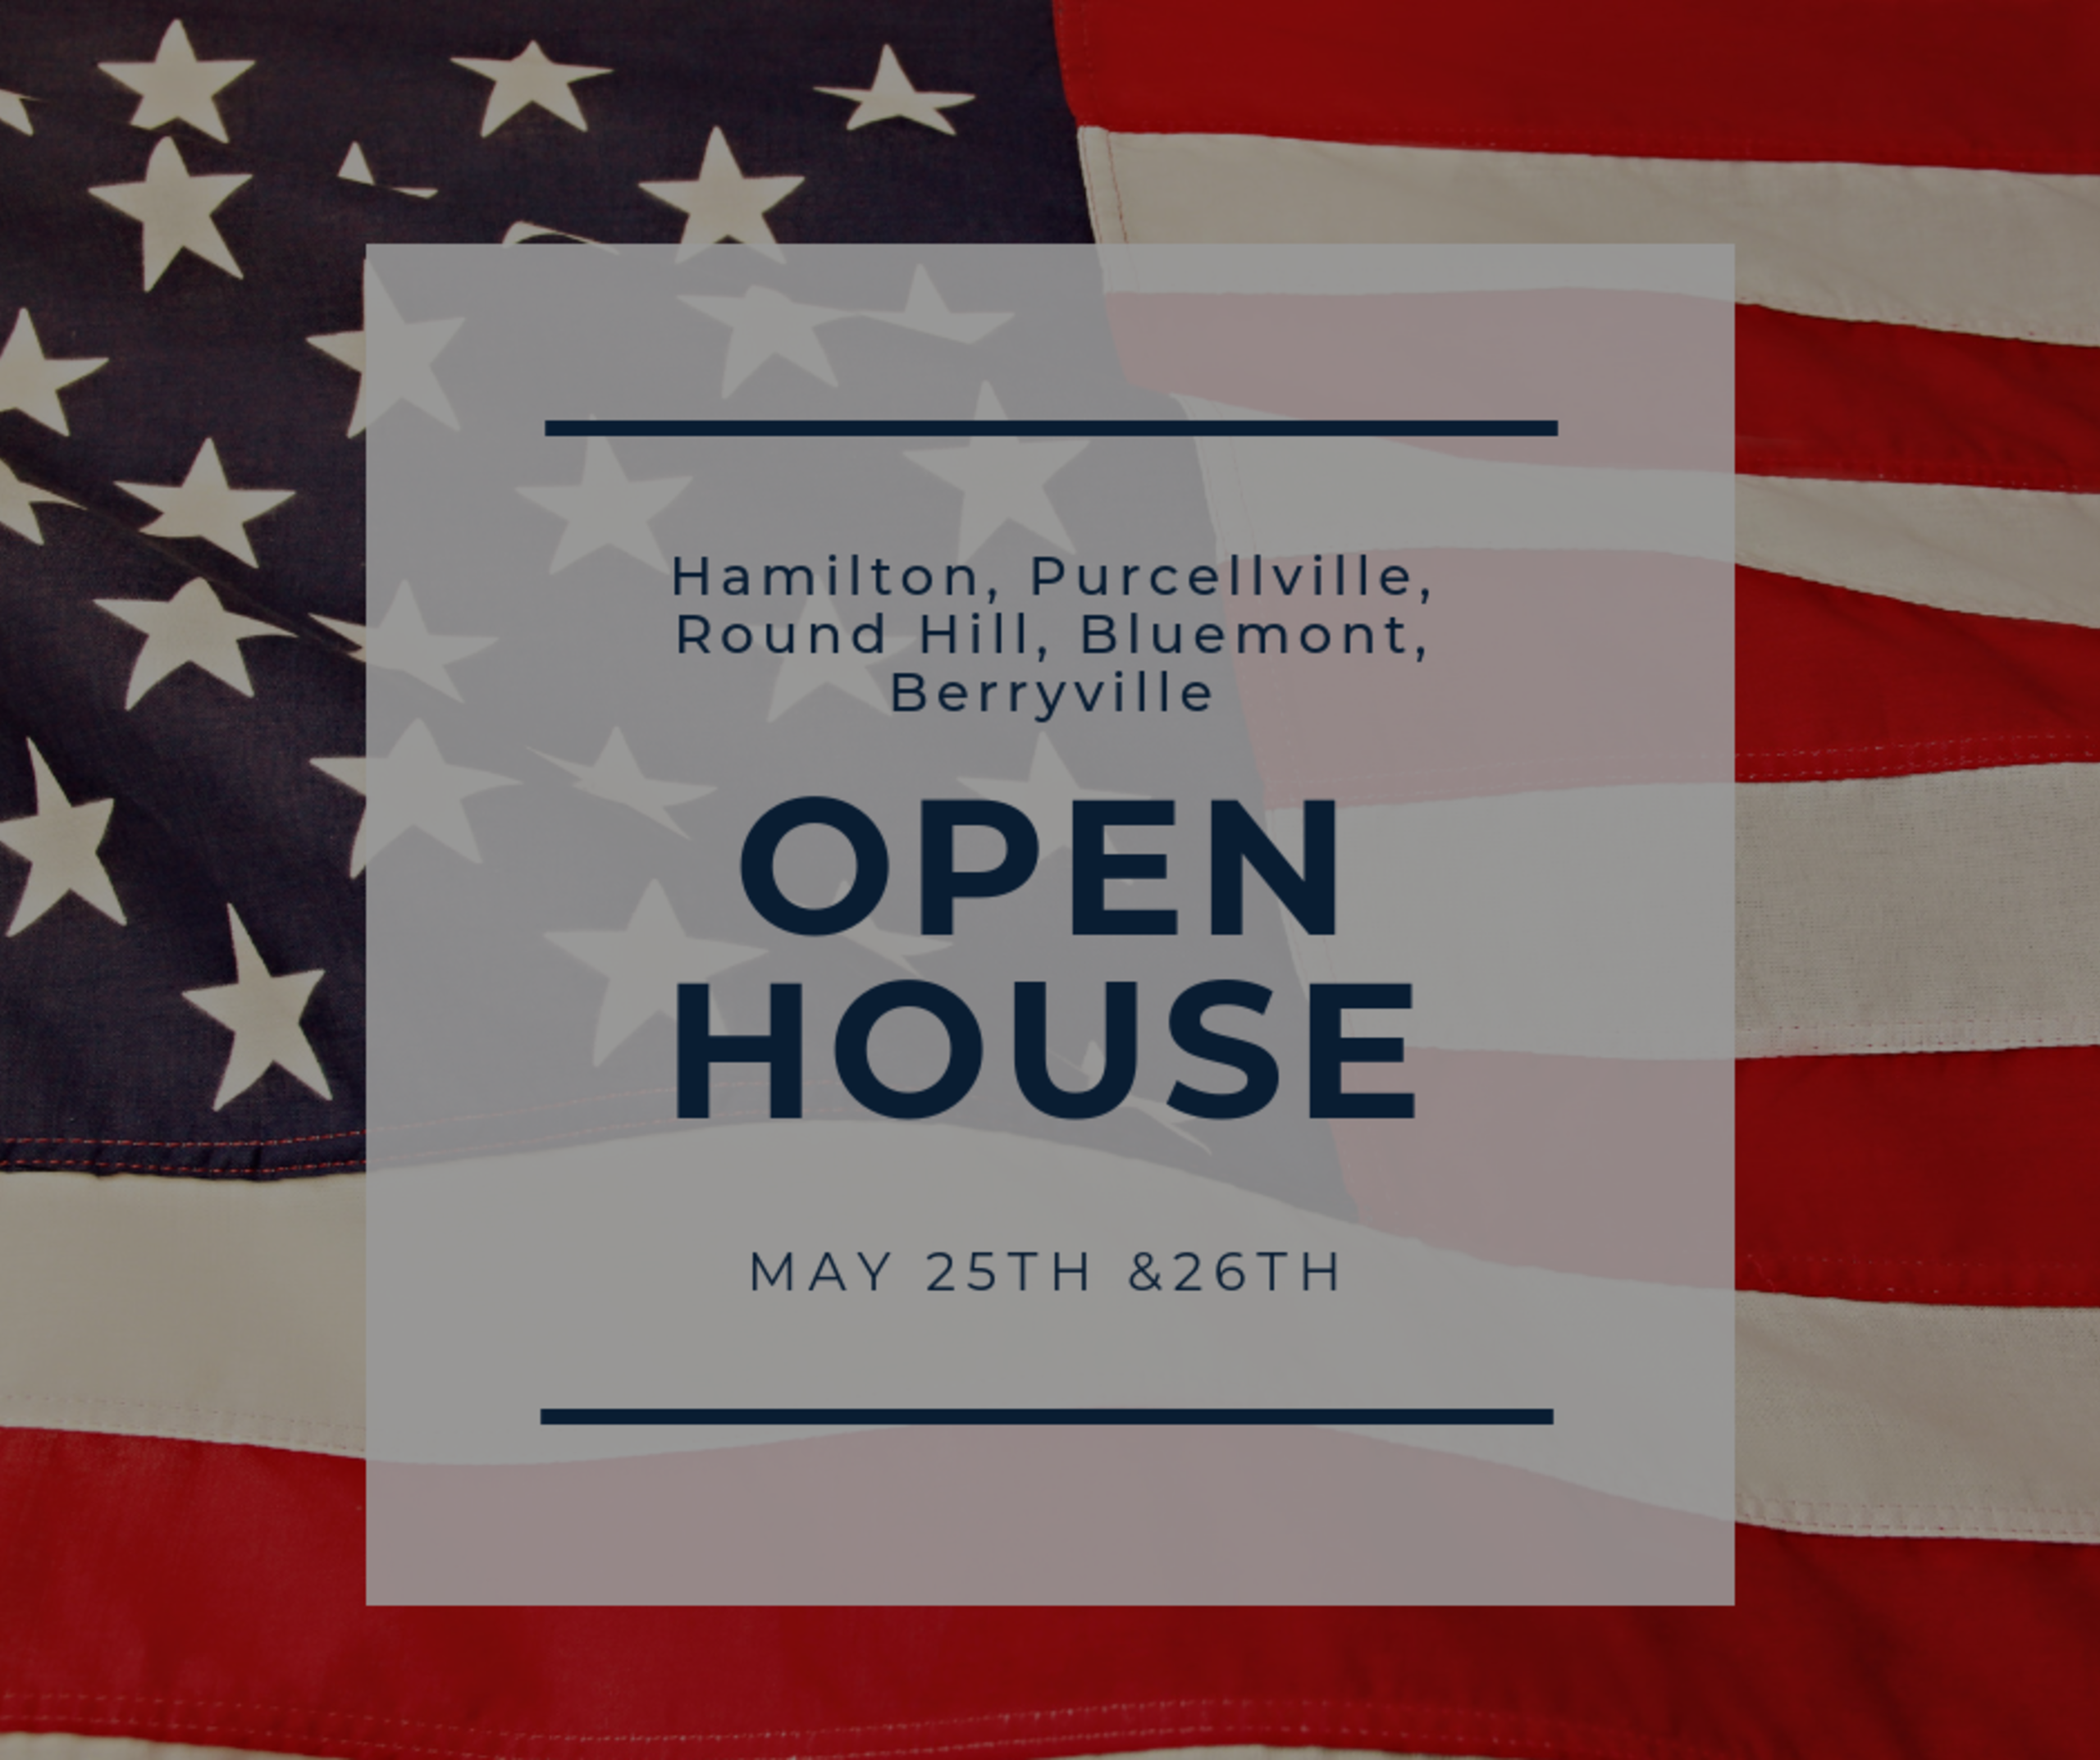 Open House List 4/25/19 – 4/26/19